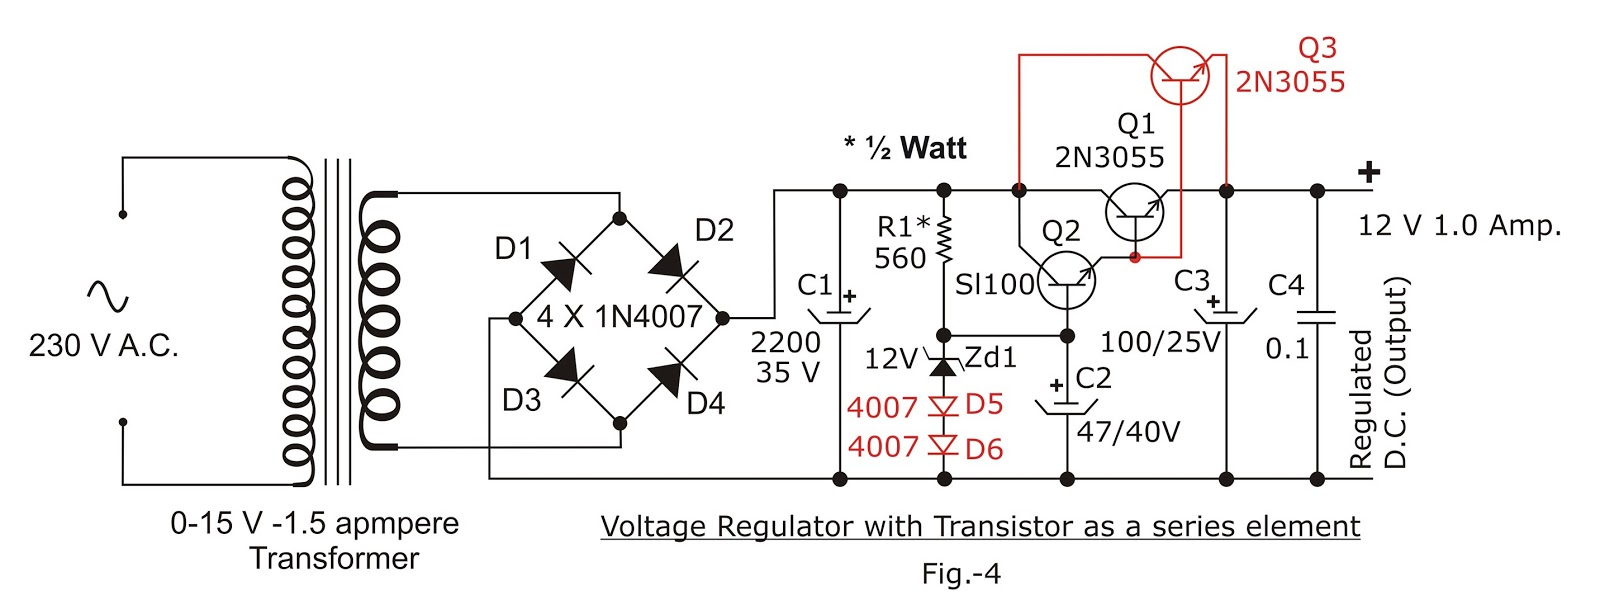 Electronic Circuits Ac Led Circuit Diagram In Addition 12 Volt Voltage Regulator